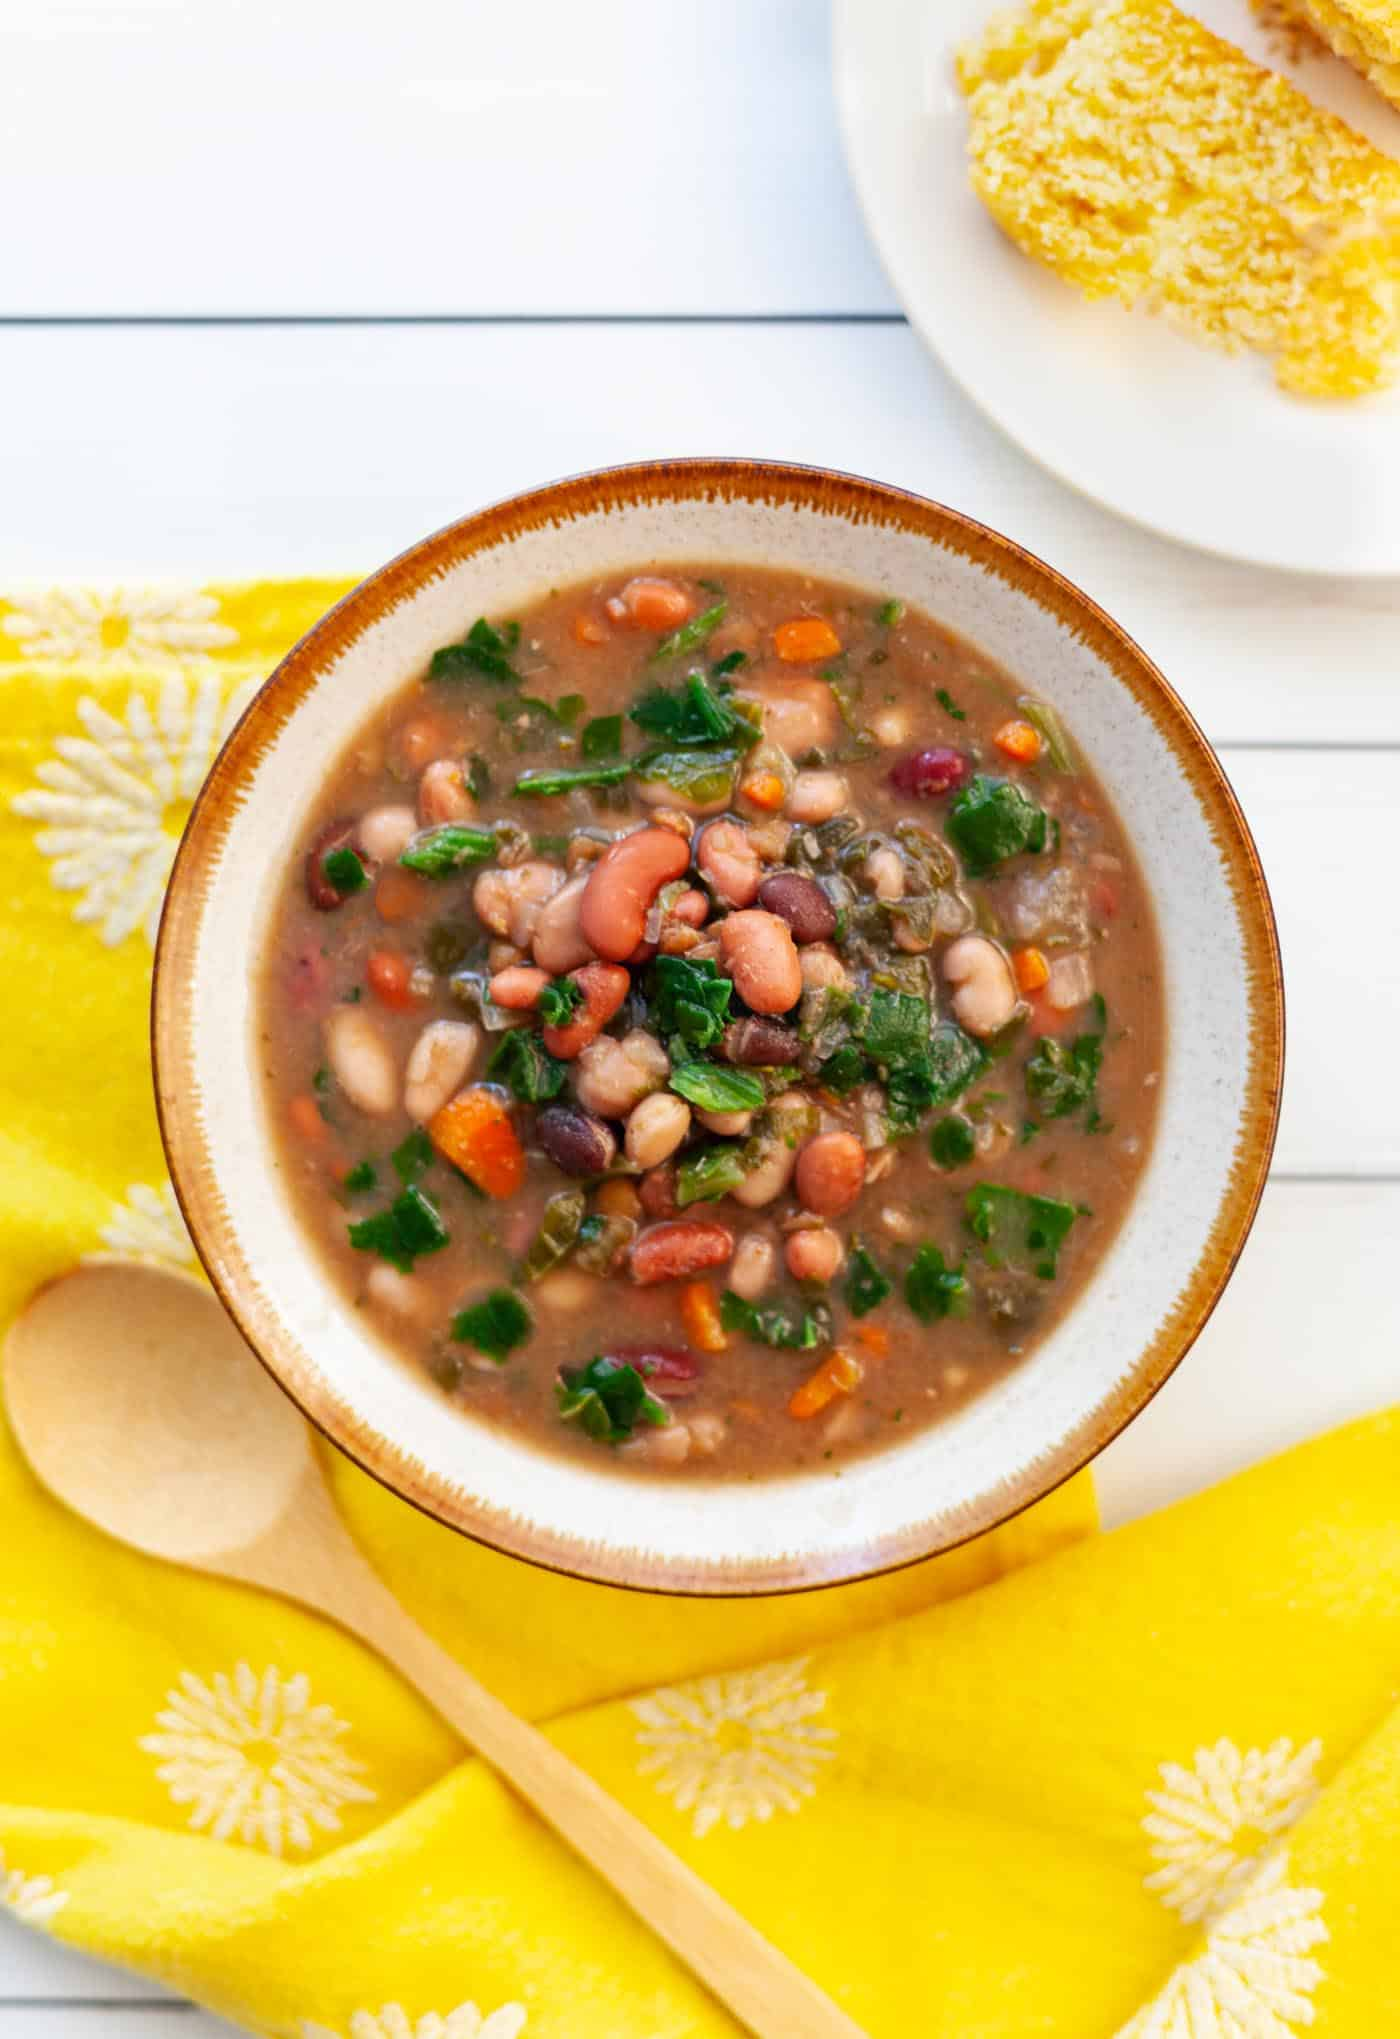 Bowl of 15 bean soup with carrots and spinach